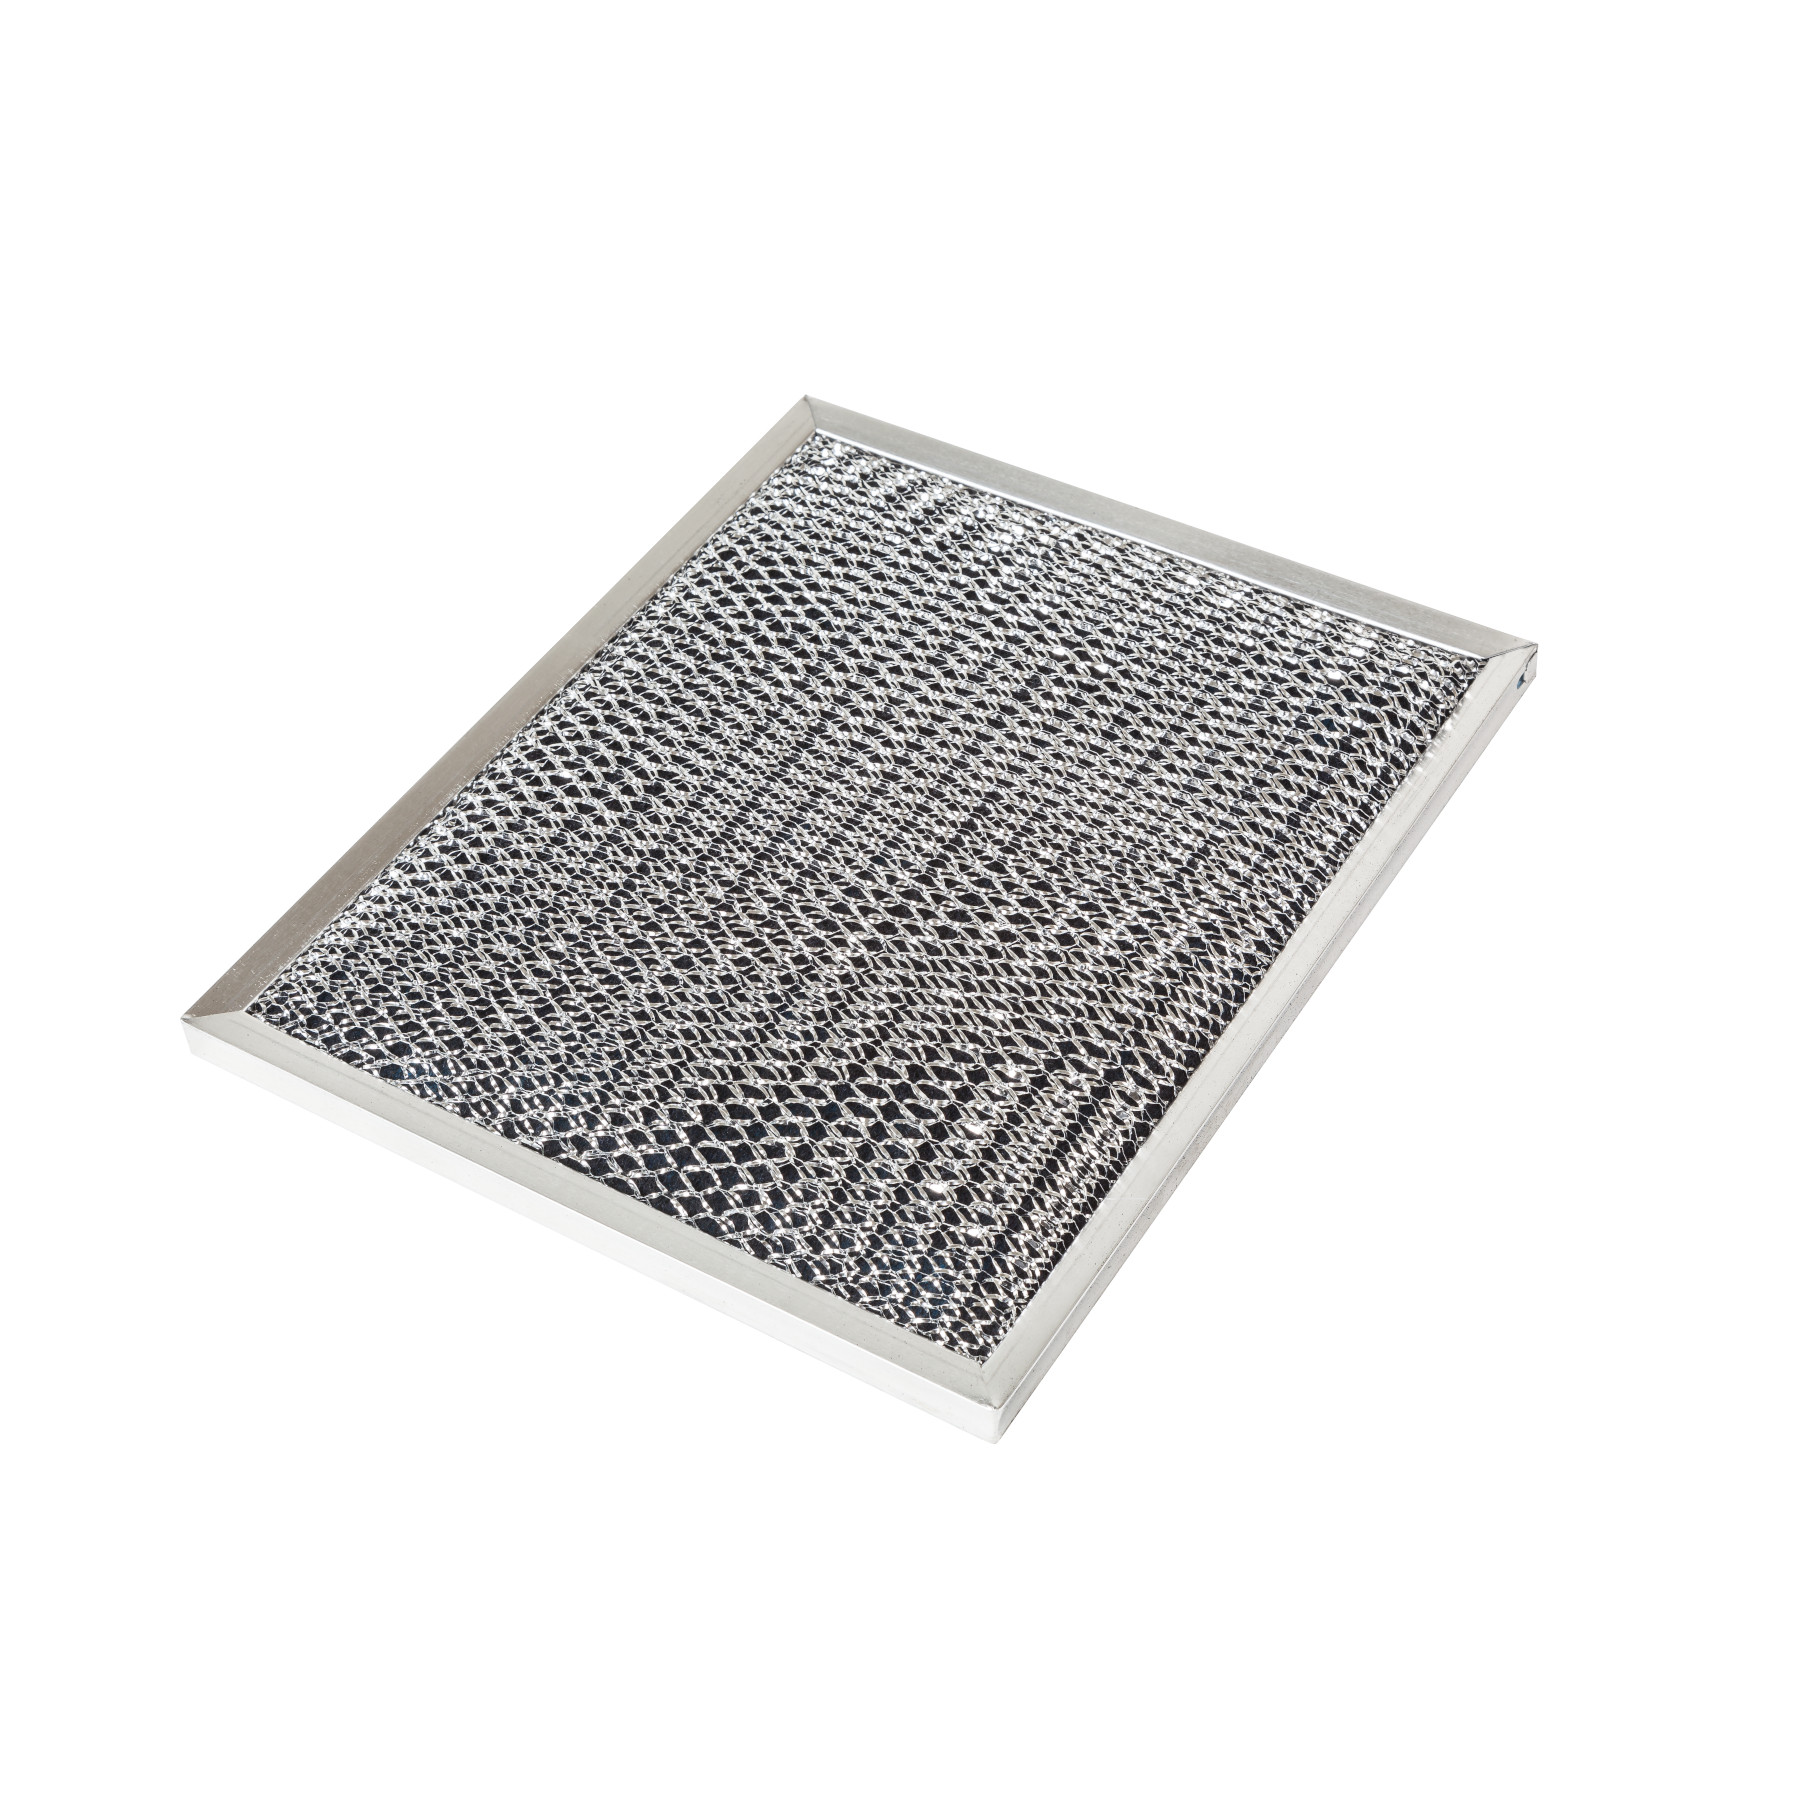 "Non-Duct Charcoal Replacement Filter for use with Select Broan® Range Hoods 8-3/4"" x 10-1/2"" x 3/8"""